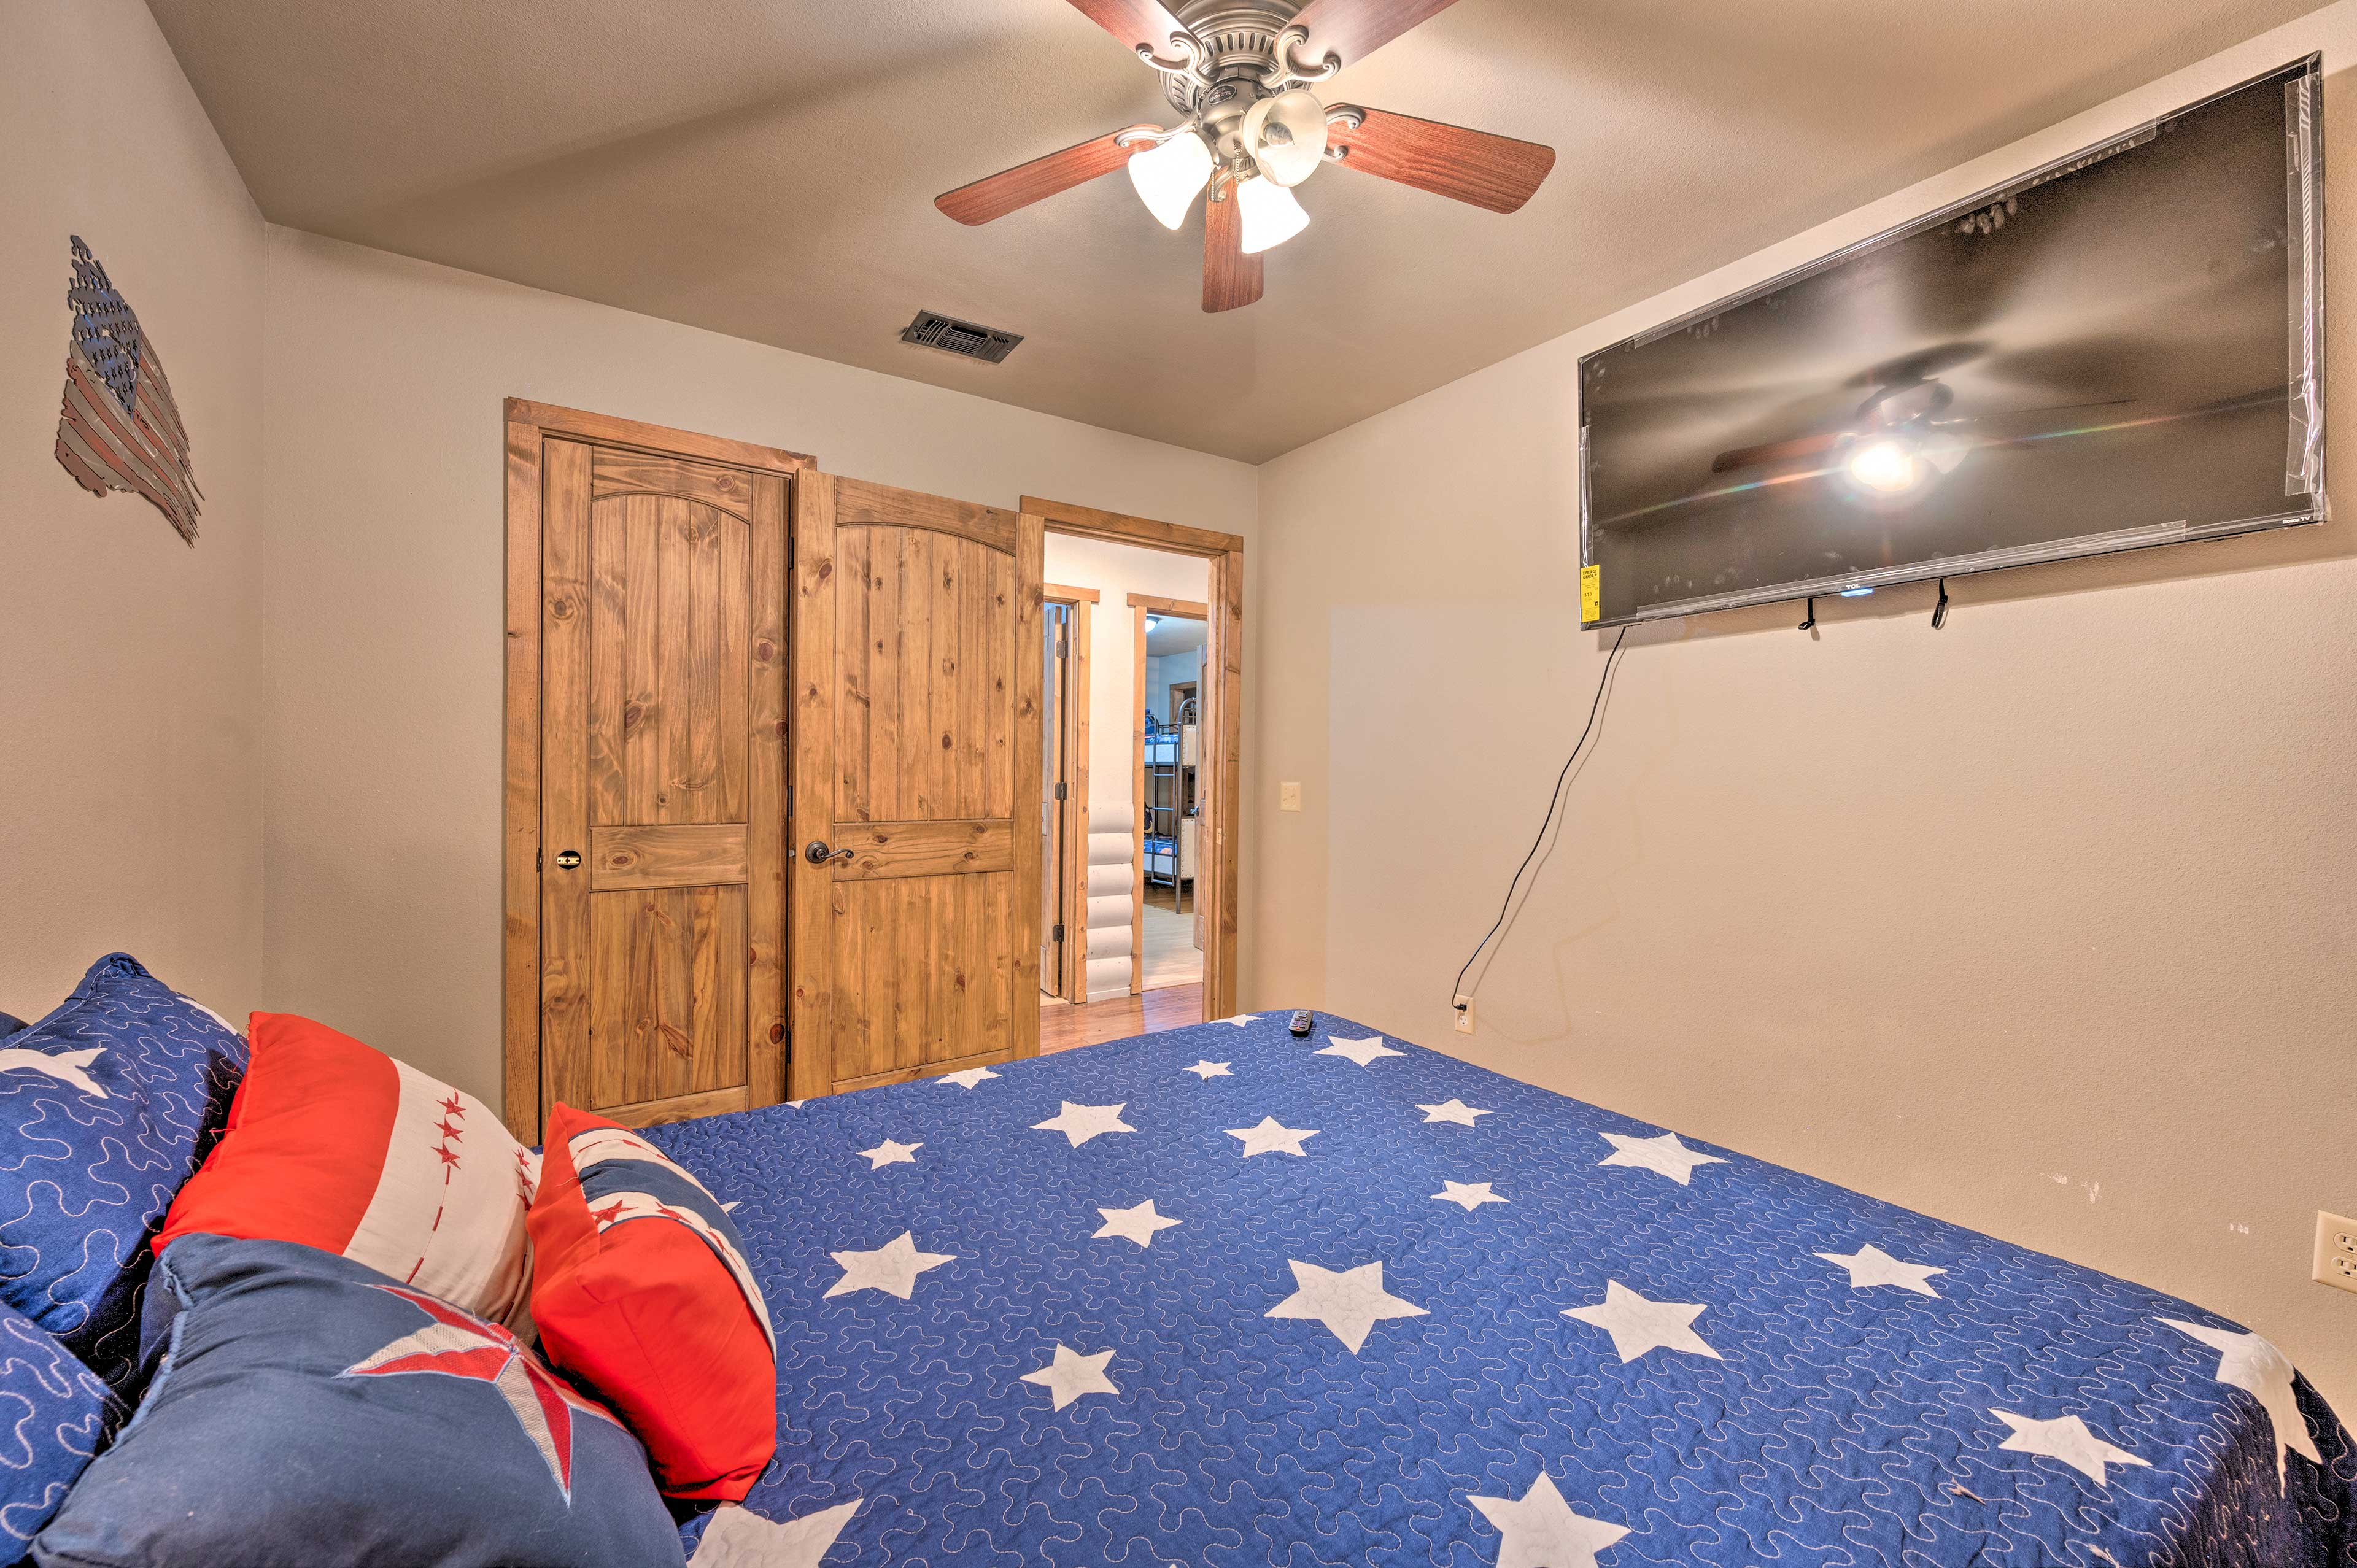 Let the ceiling fan buffer you to sleep each night.